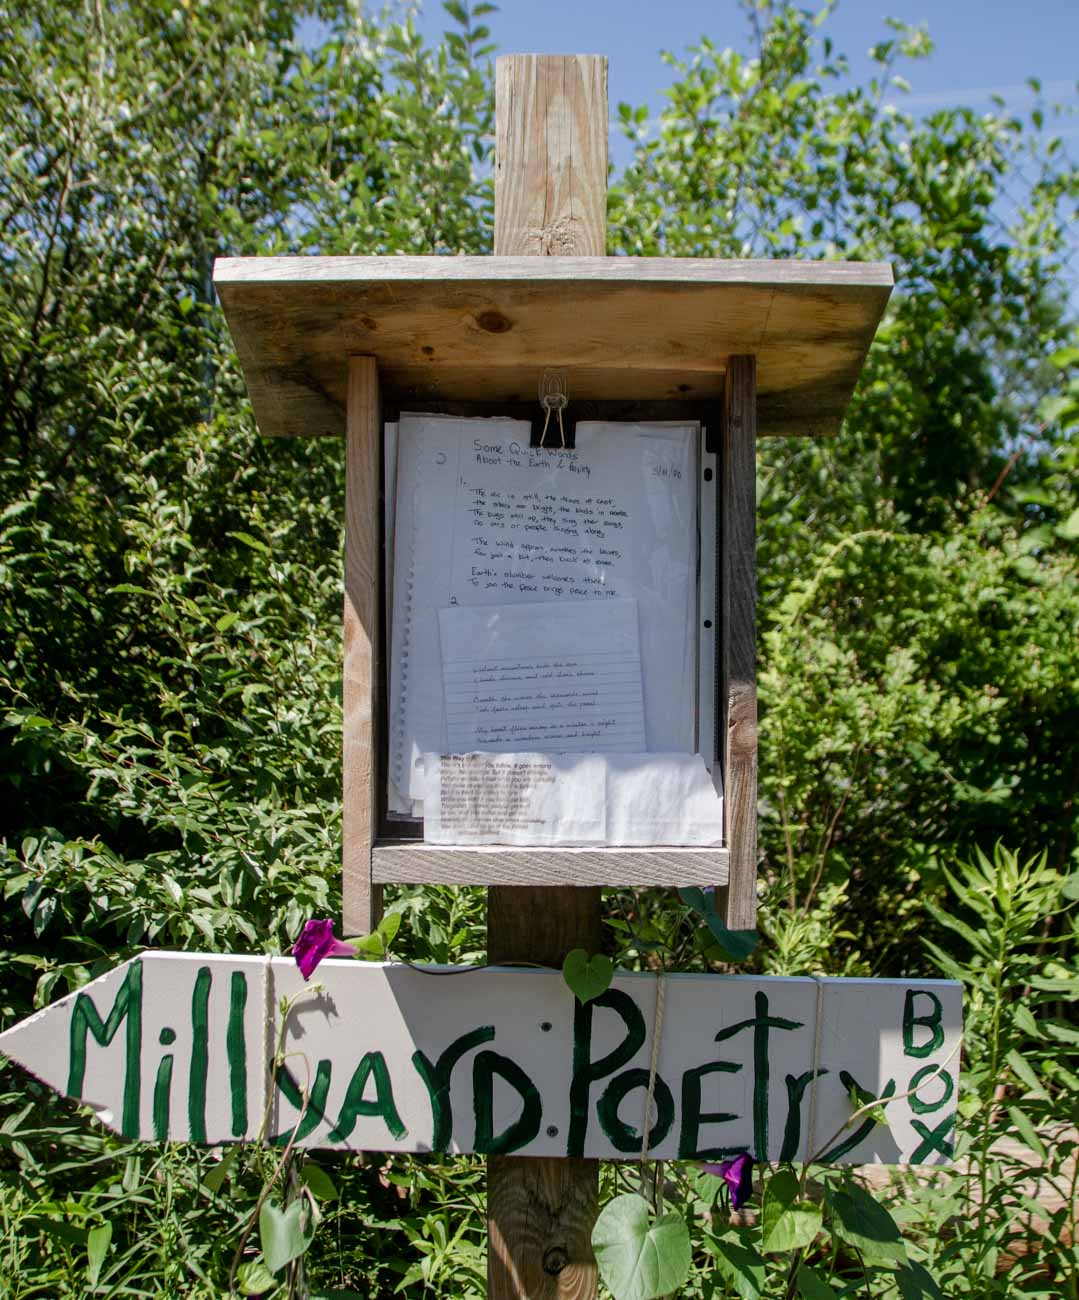 The Millyard Poetry Box